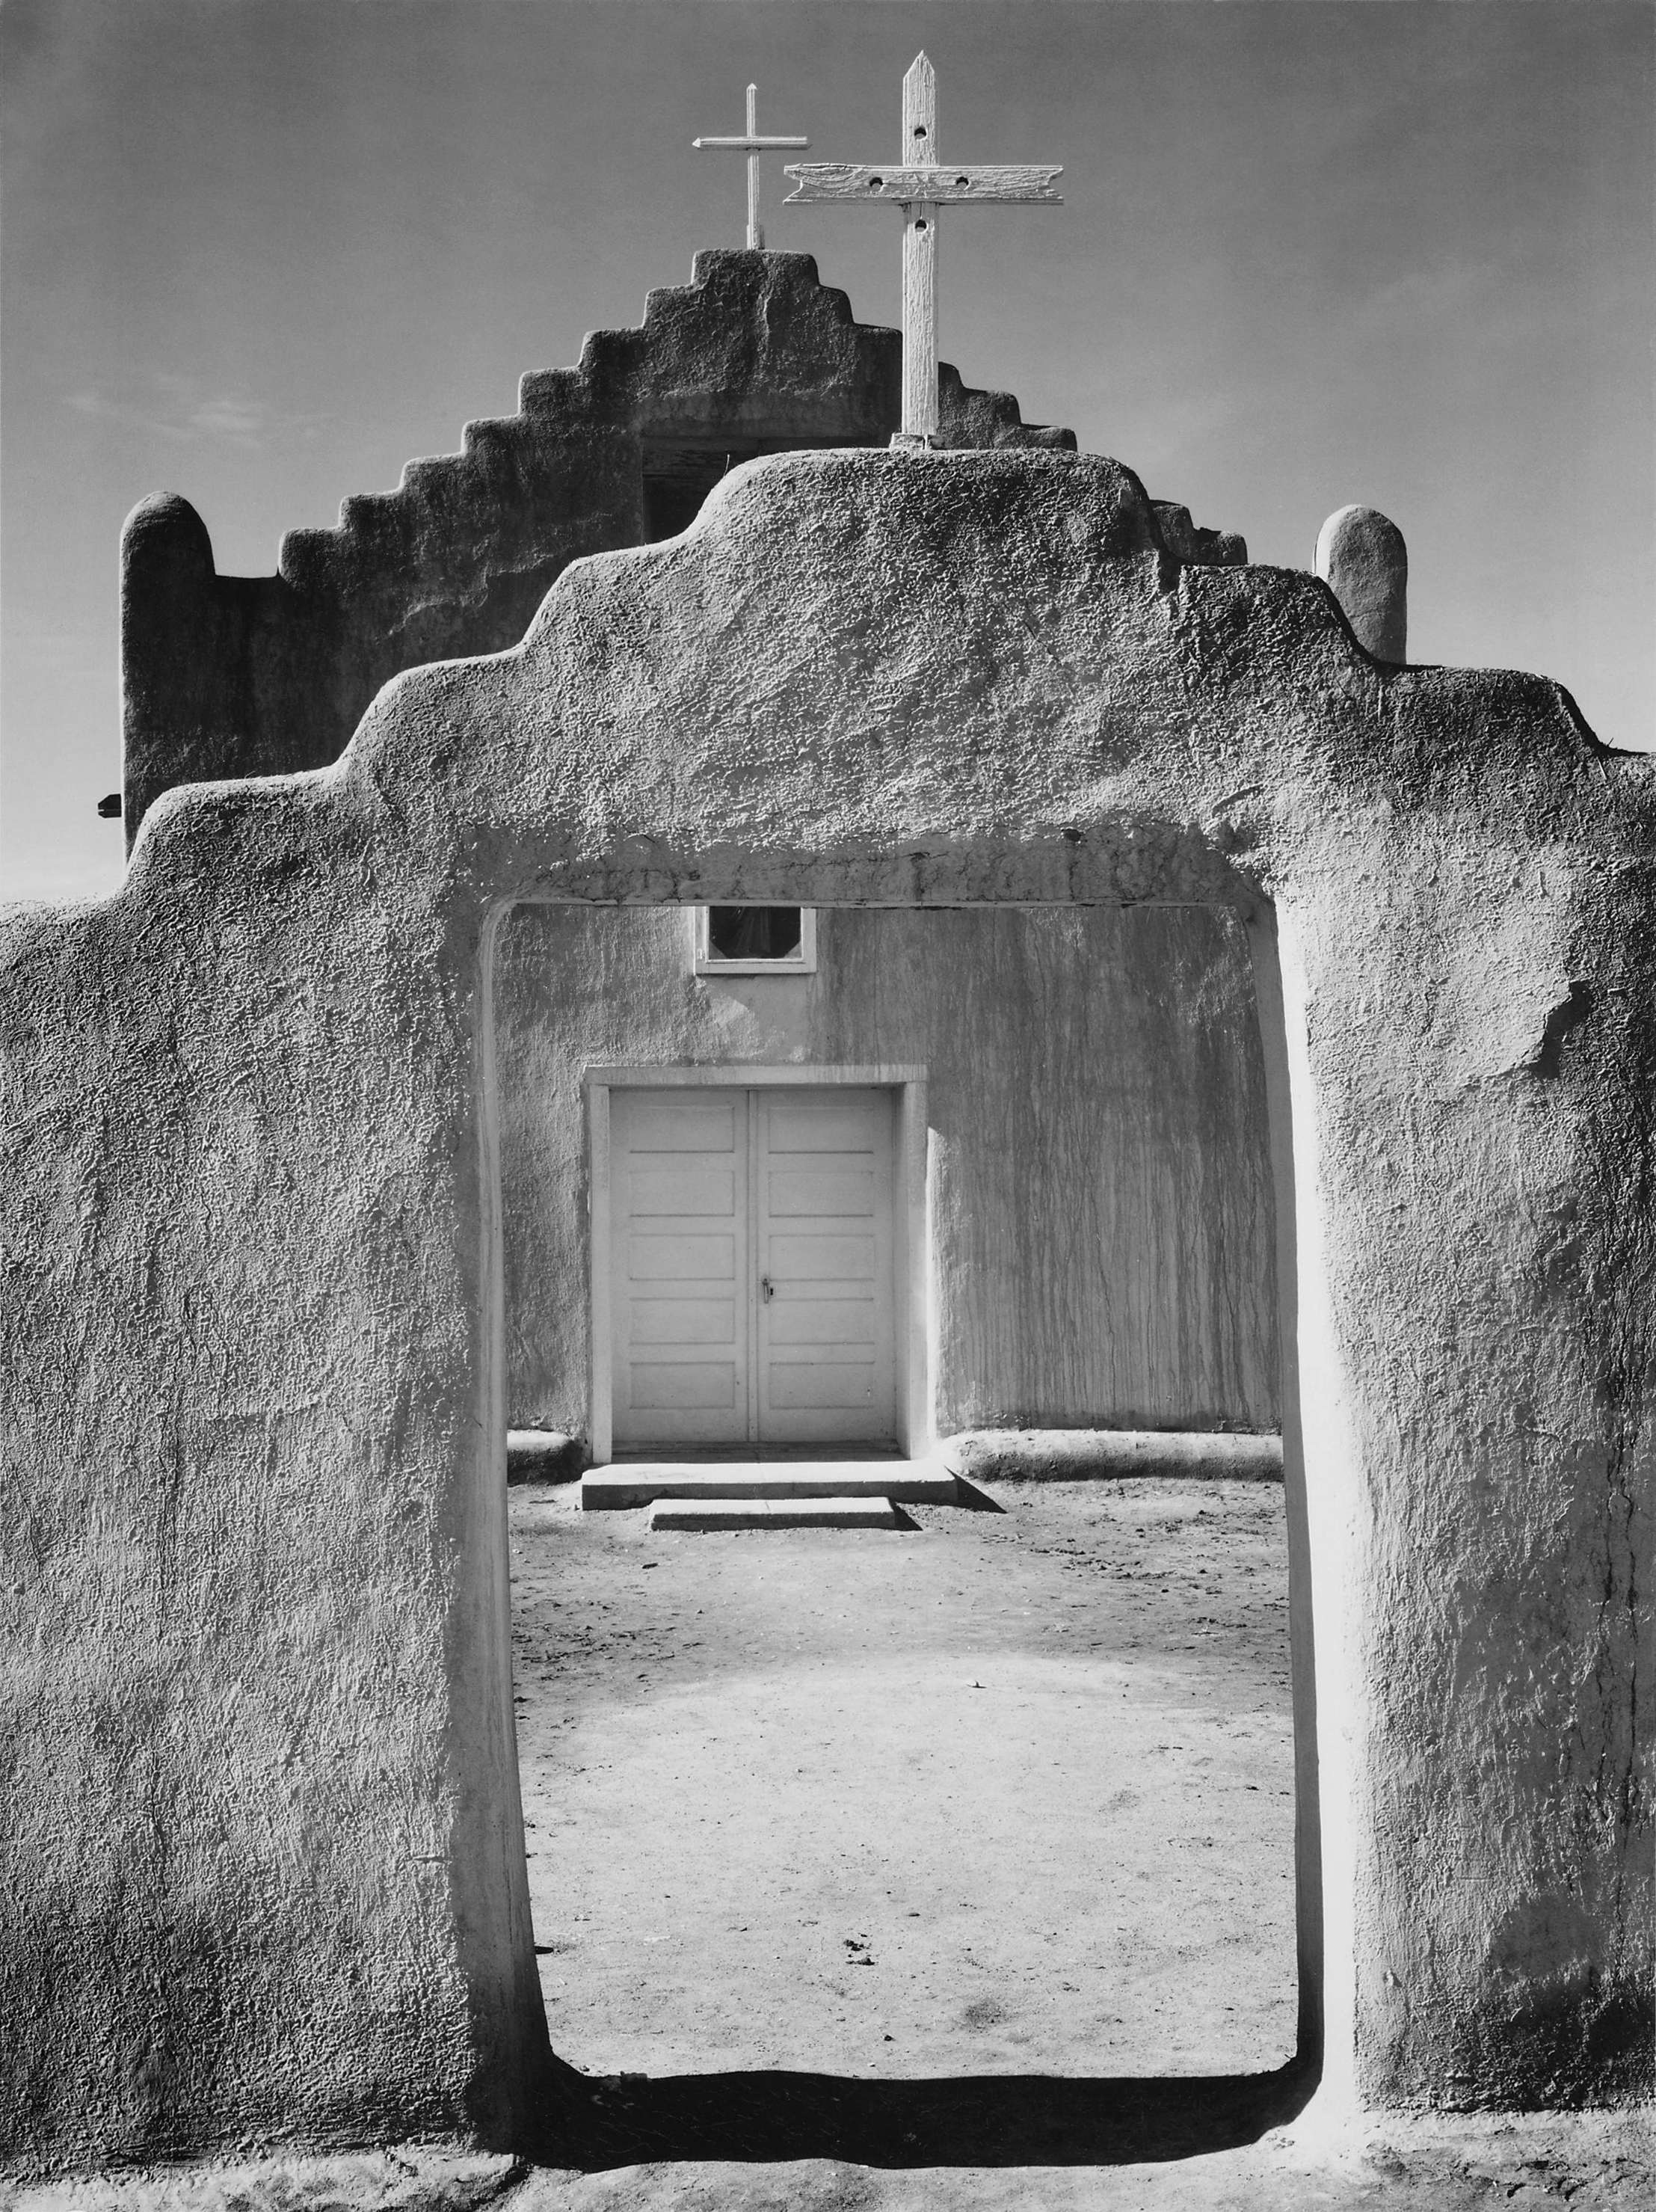 What first interested me in Taos was this Ansel Adams photo of the church, taken in 1941.